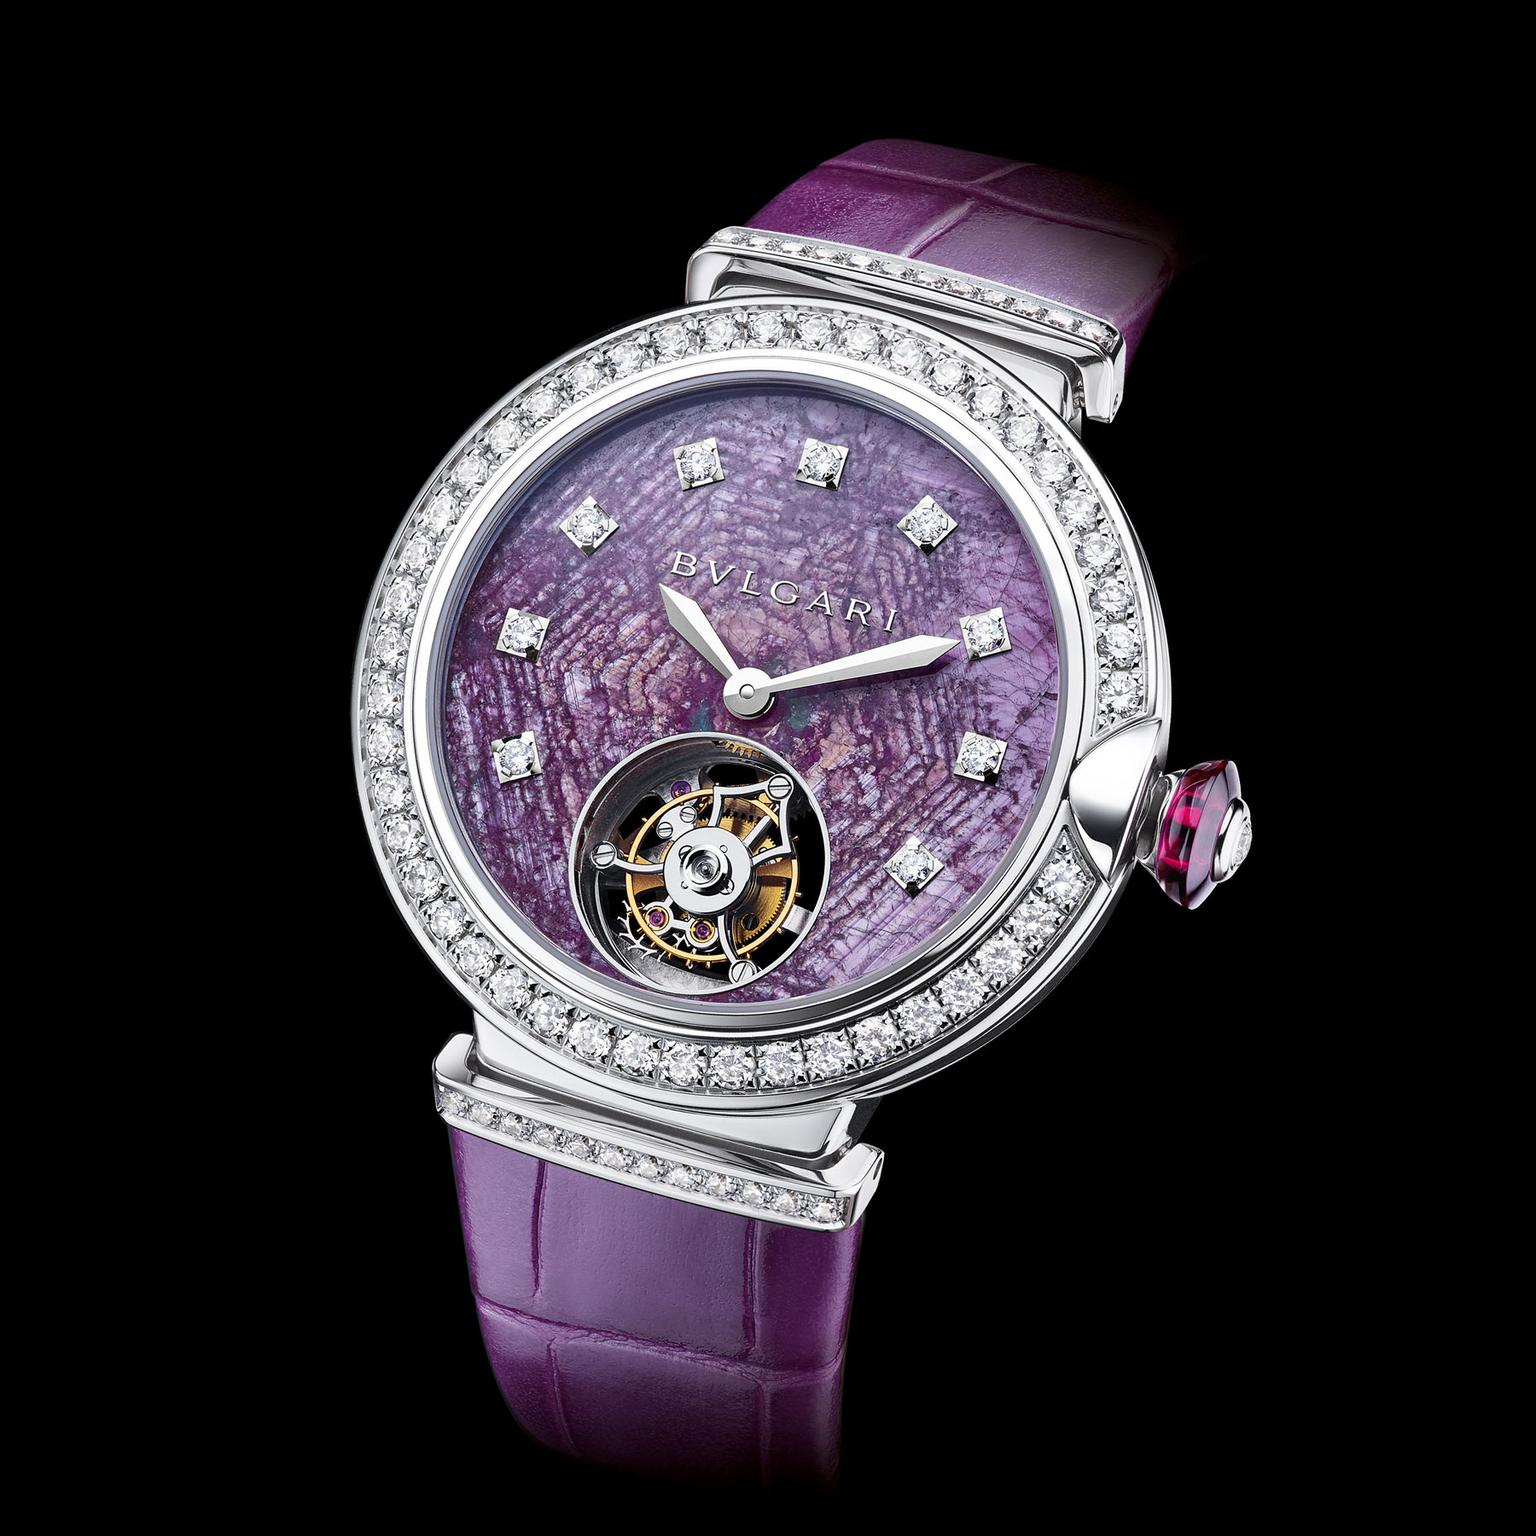 Bulgari LVCEA Tourbillon with ruby dial